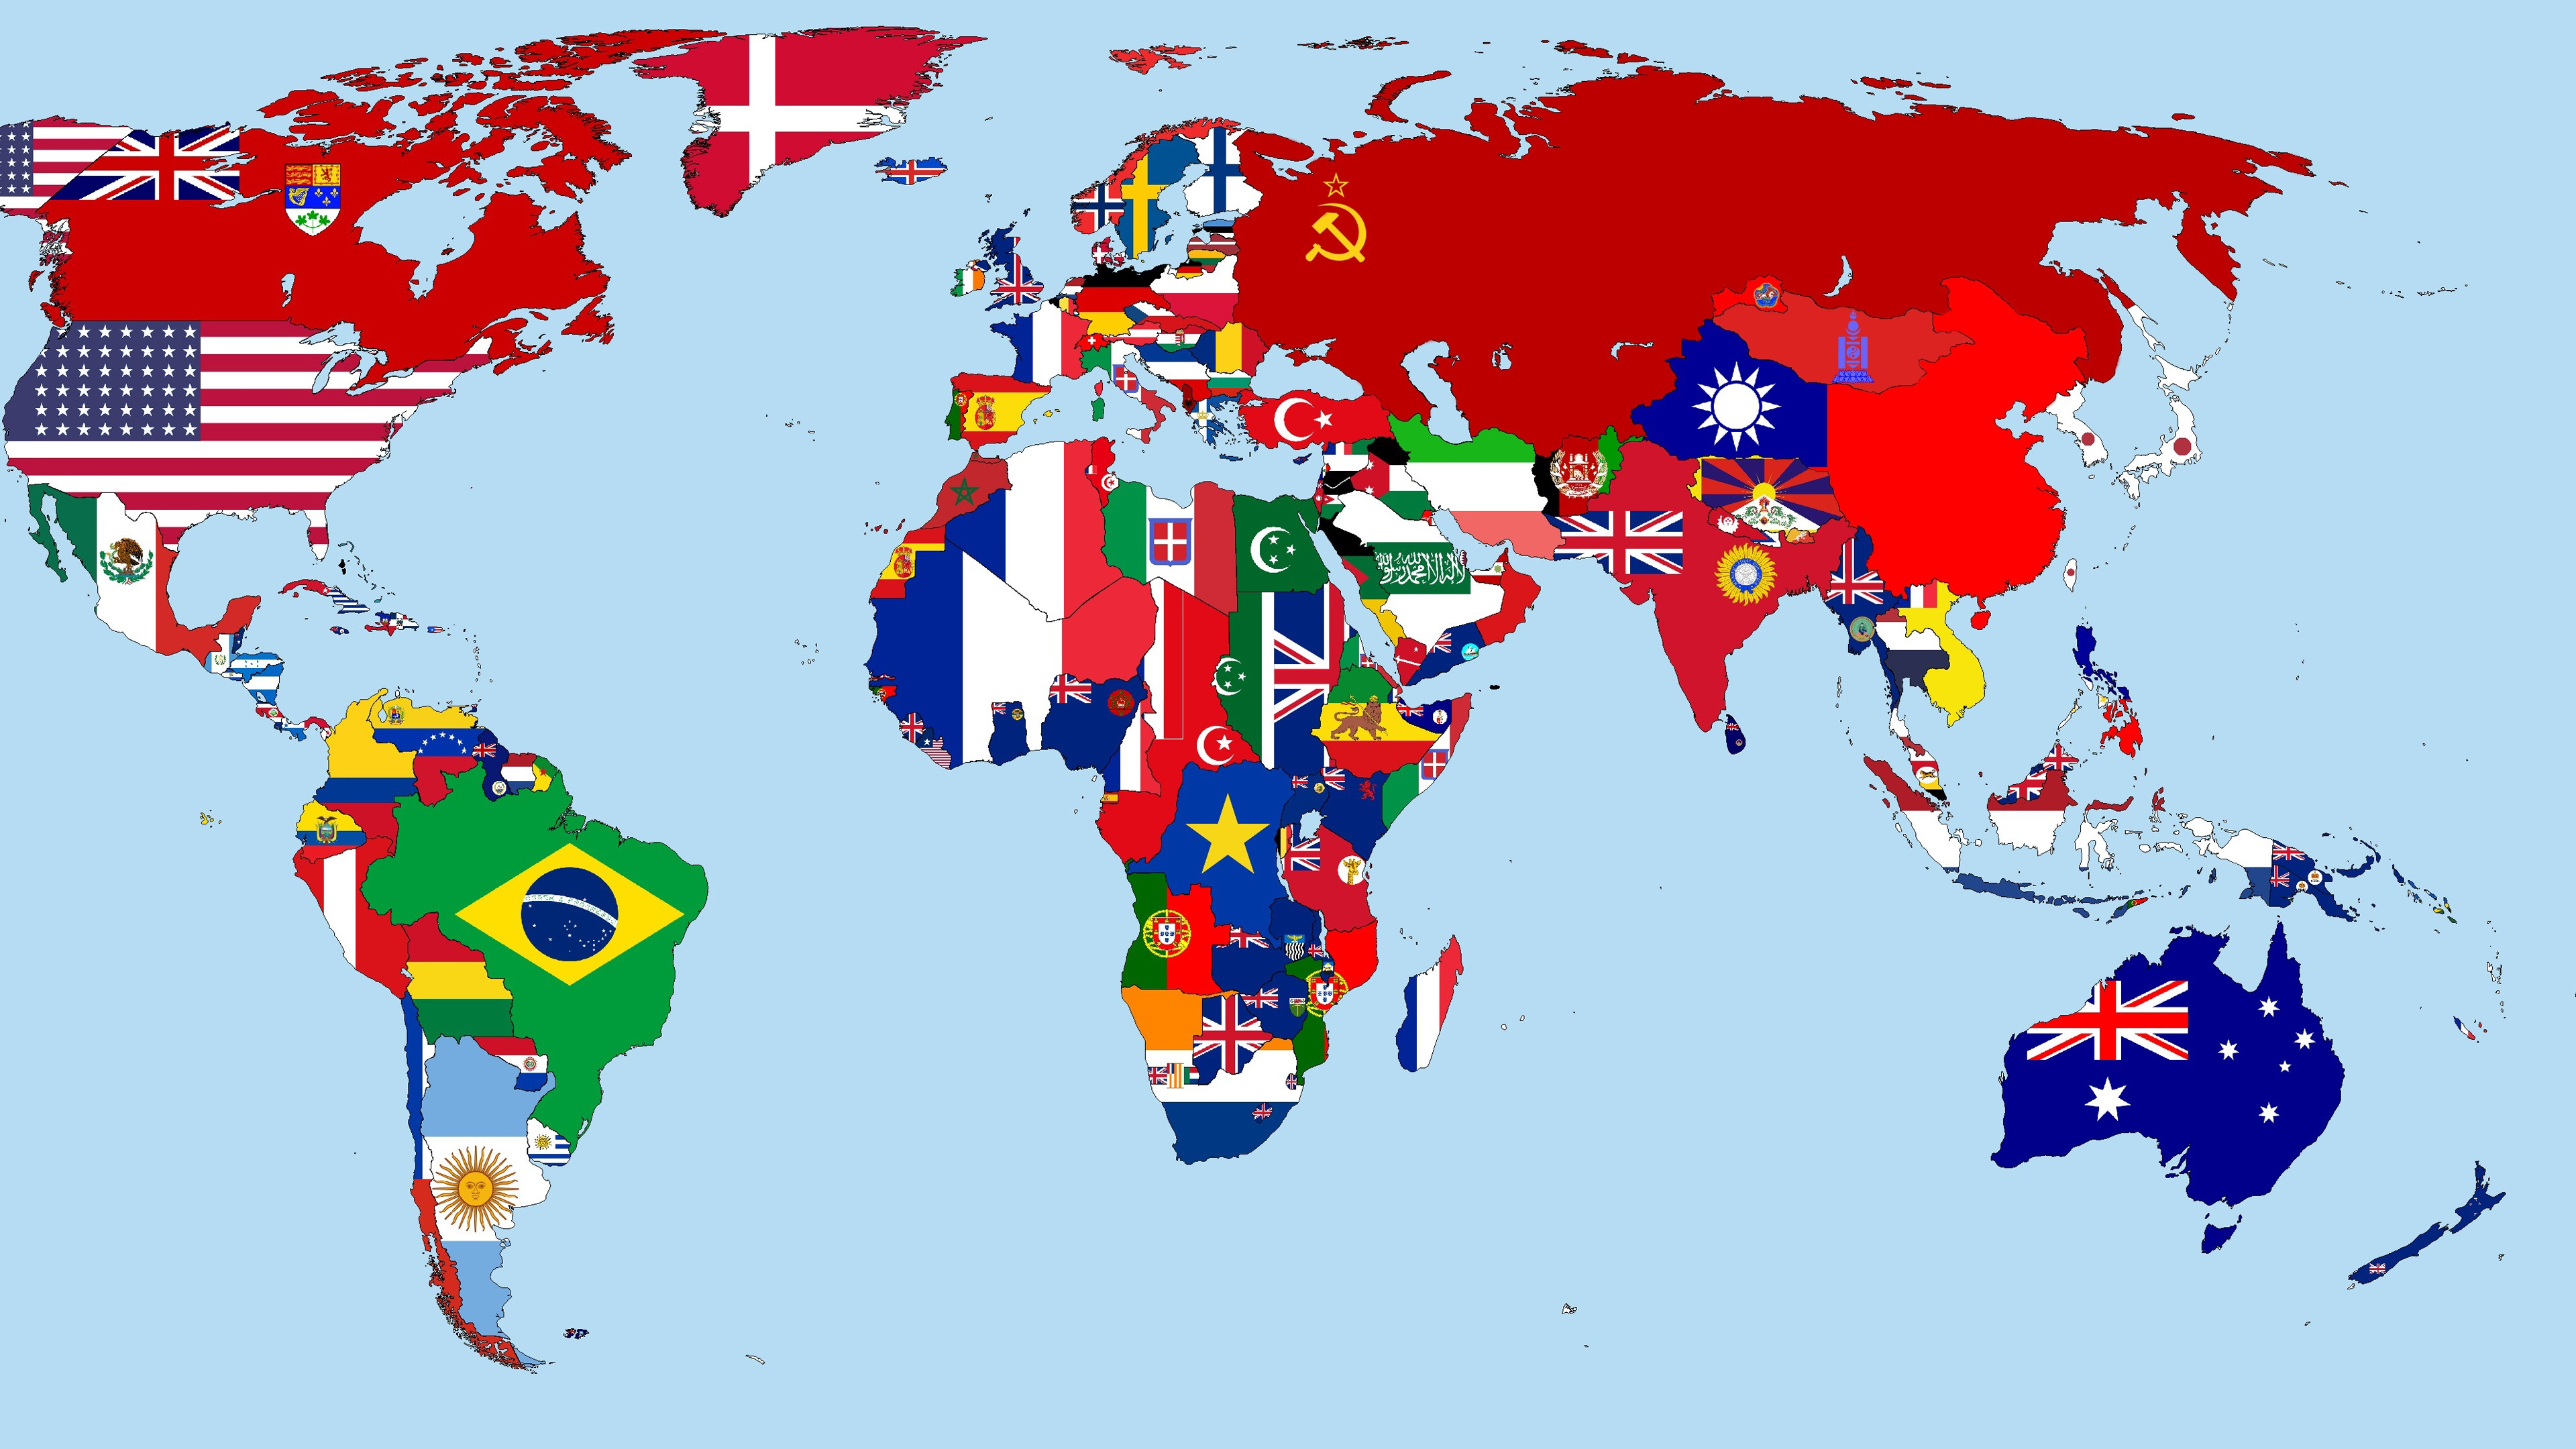 Wallpaper world map in 1930 flags countries 3840x2160 uhd 4k worldmap1930flagscountries original resolution 3840x2160 download this wallpaper gumiabroncs Gallery